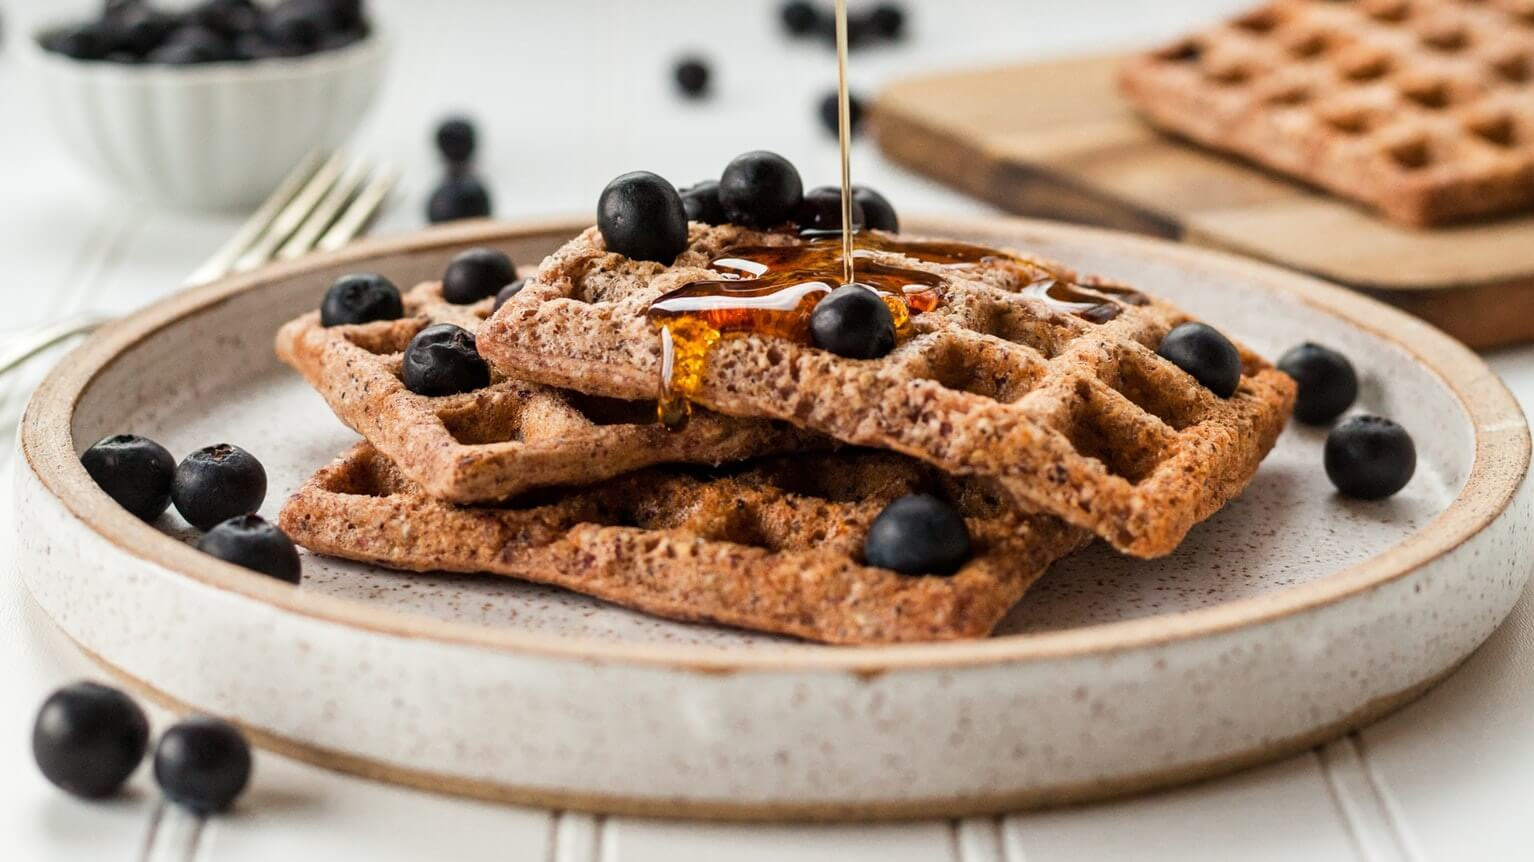 How to Make the Perfect Vegan Waffle